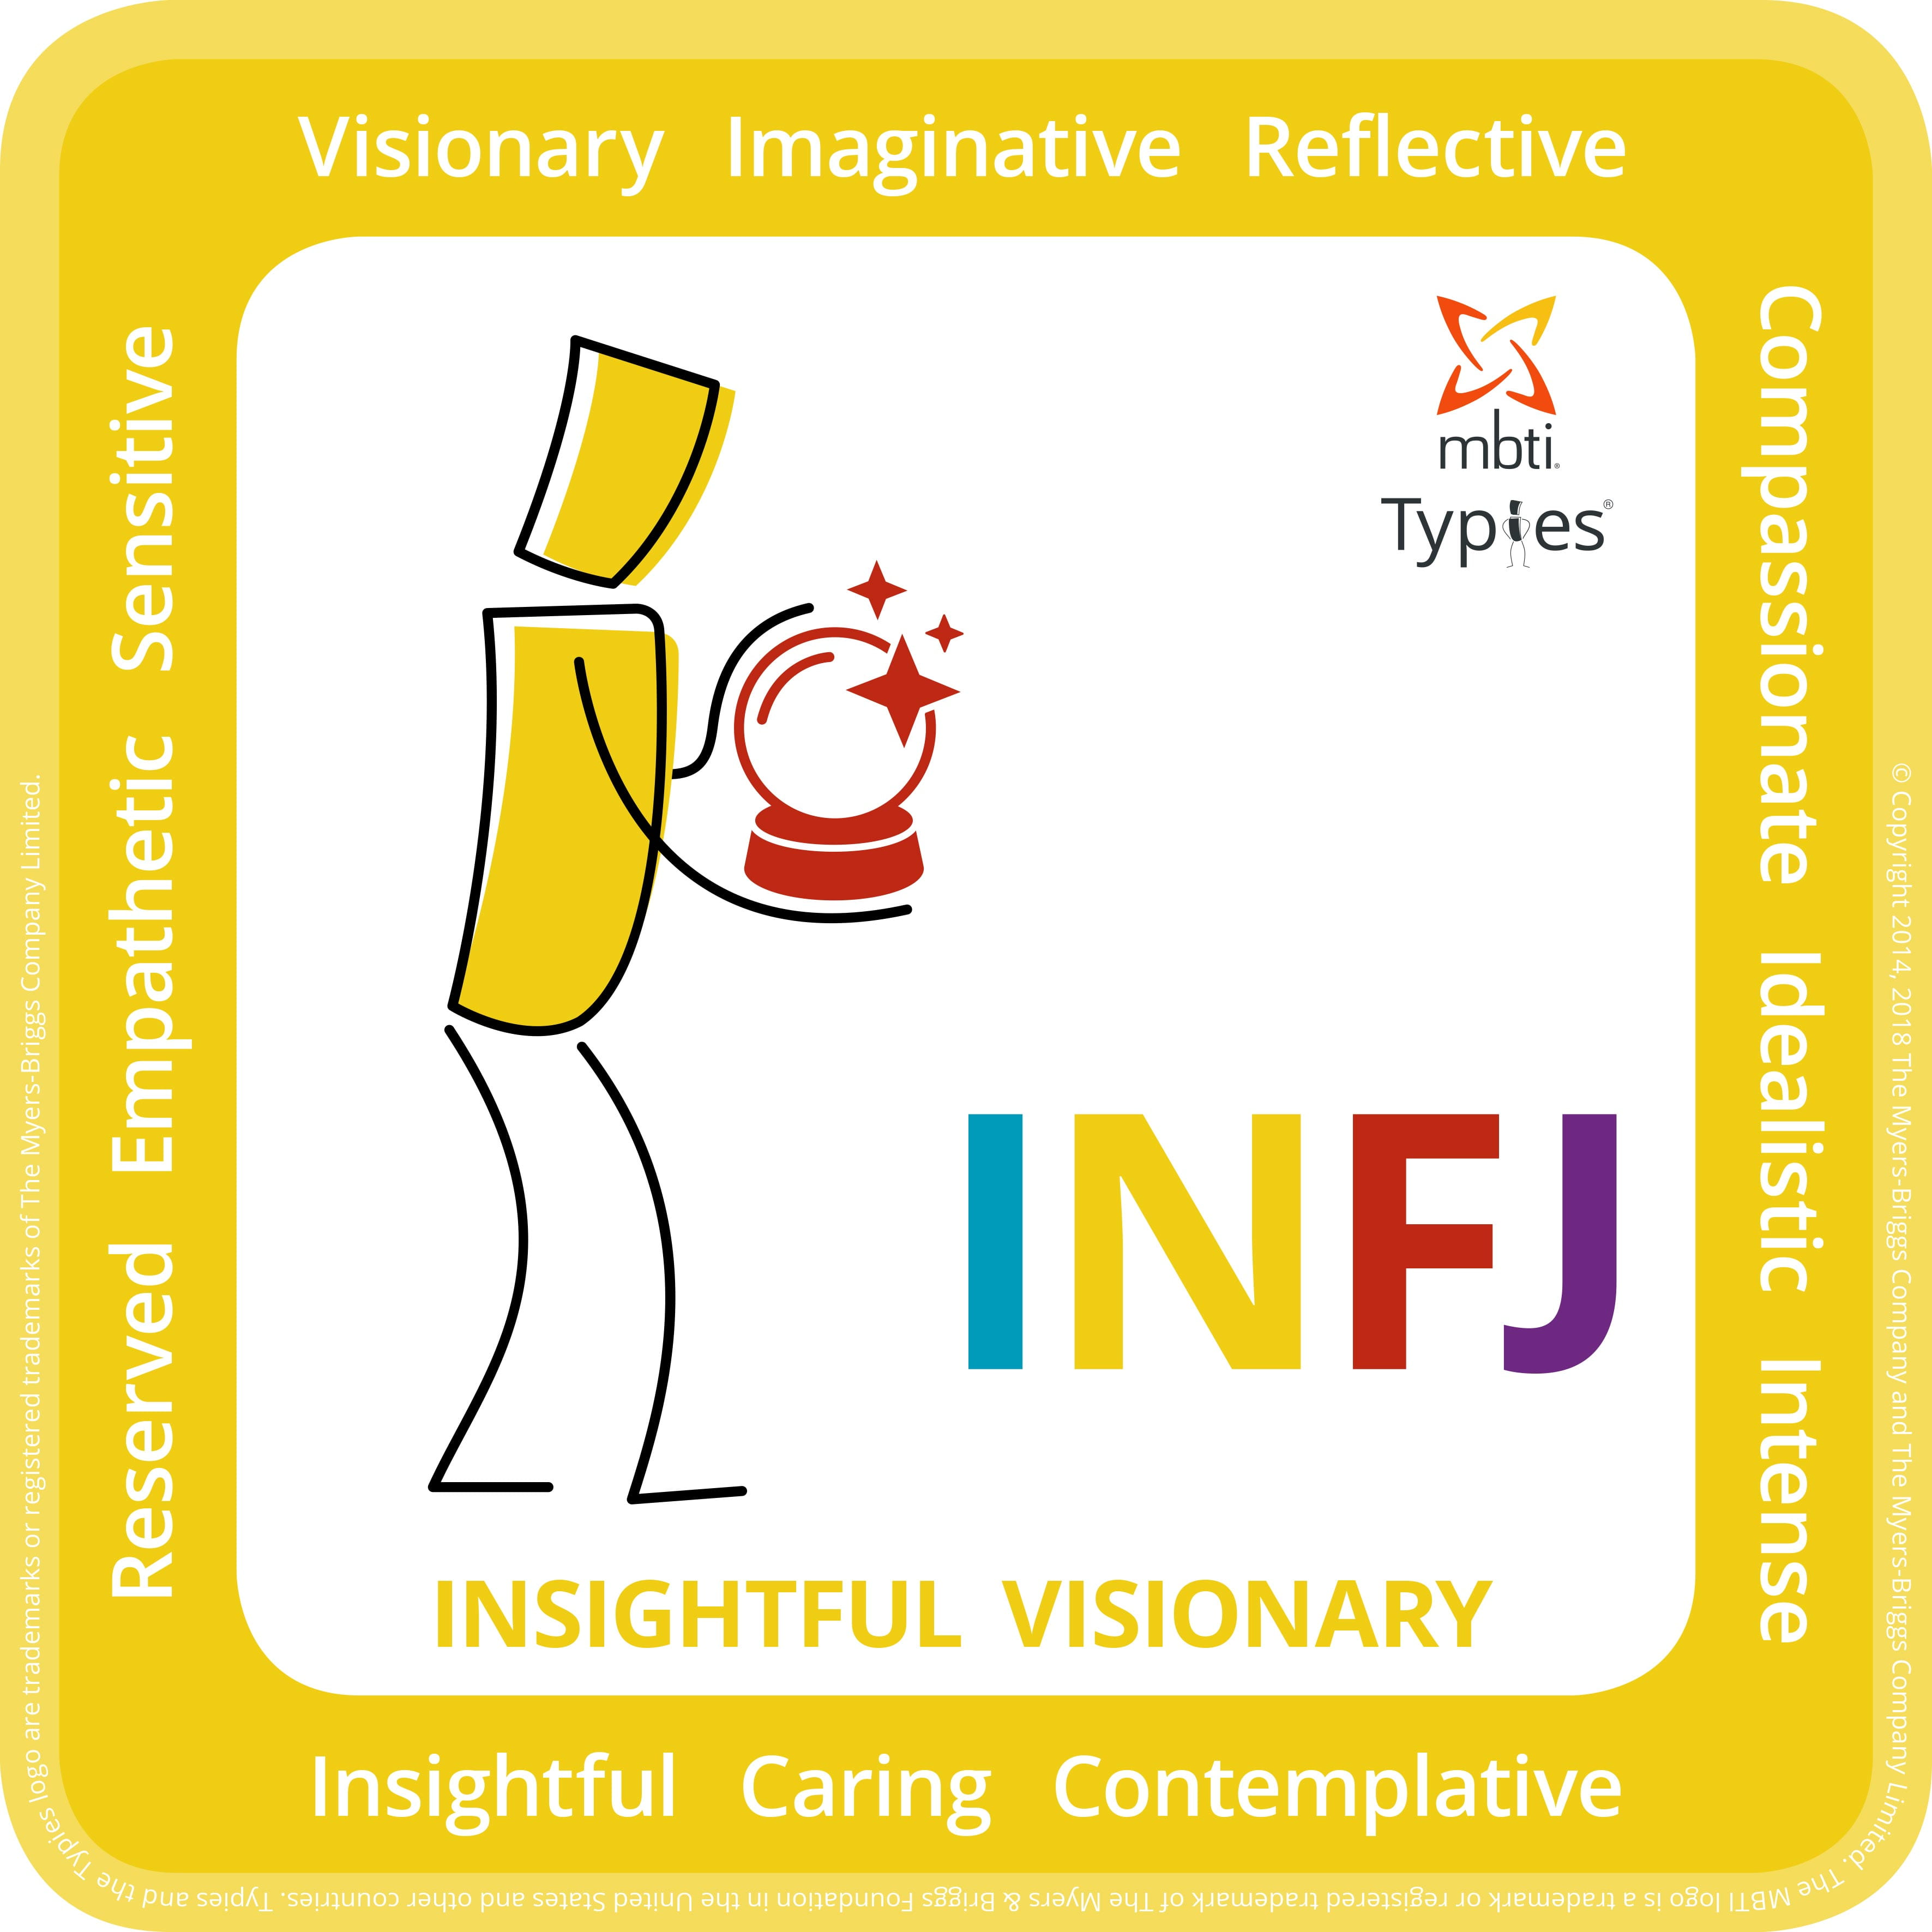 Typical characteristics of an INFJ